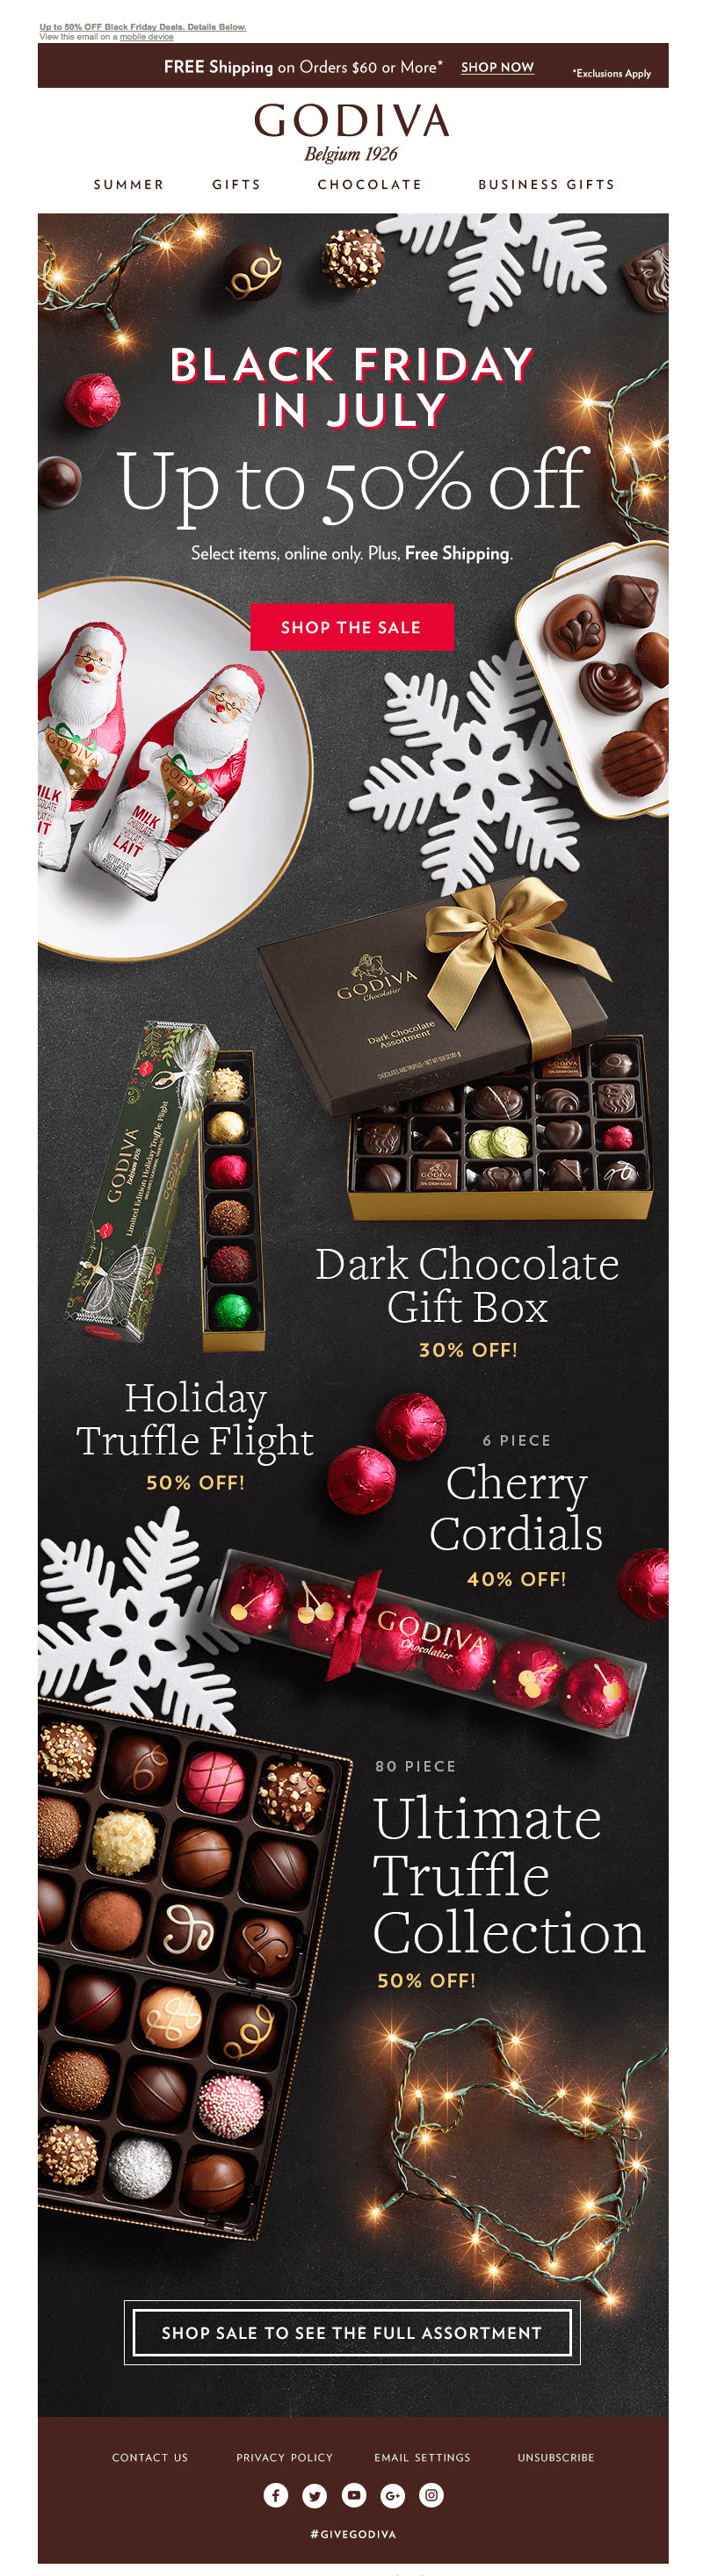 Godiva Christmas in July